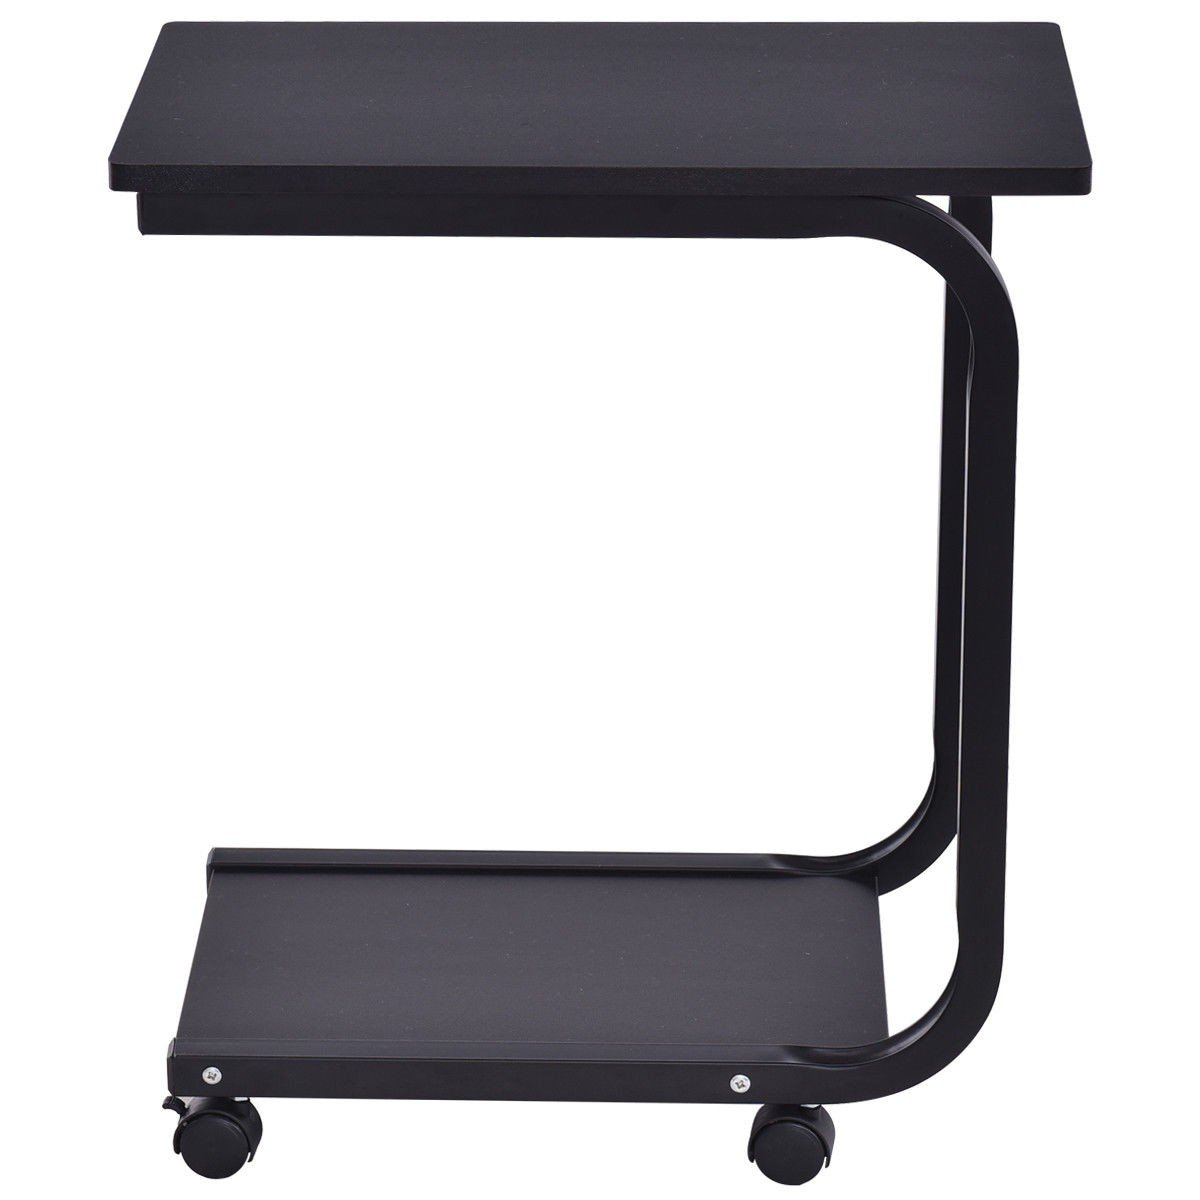 2 Tier Snack Stand Rolling Sofa Side Table By Choice